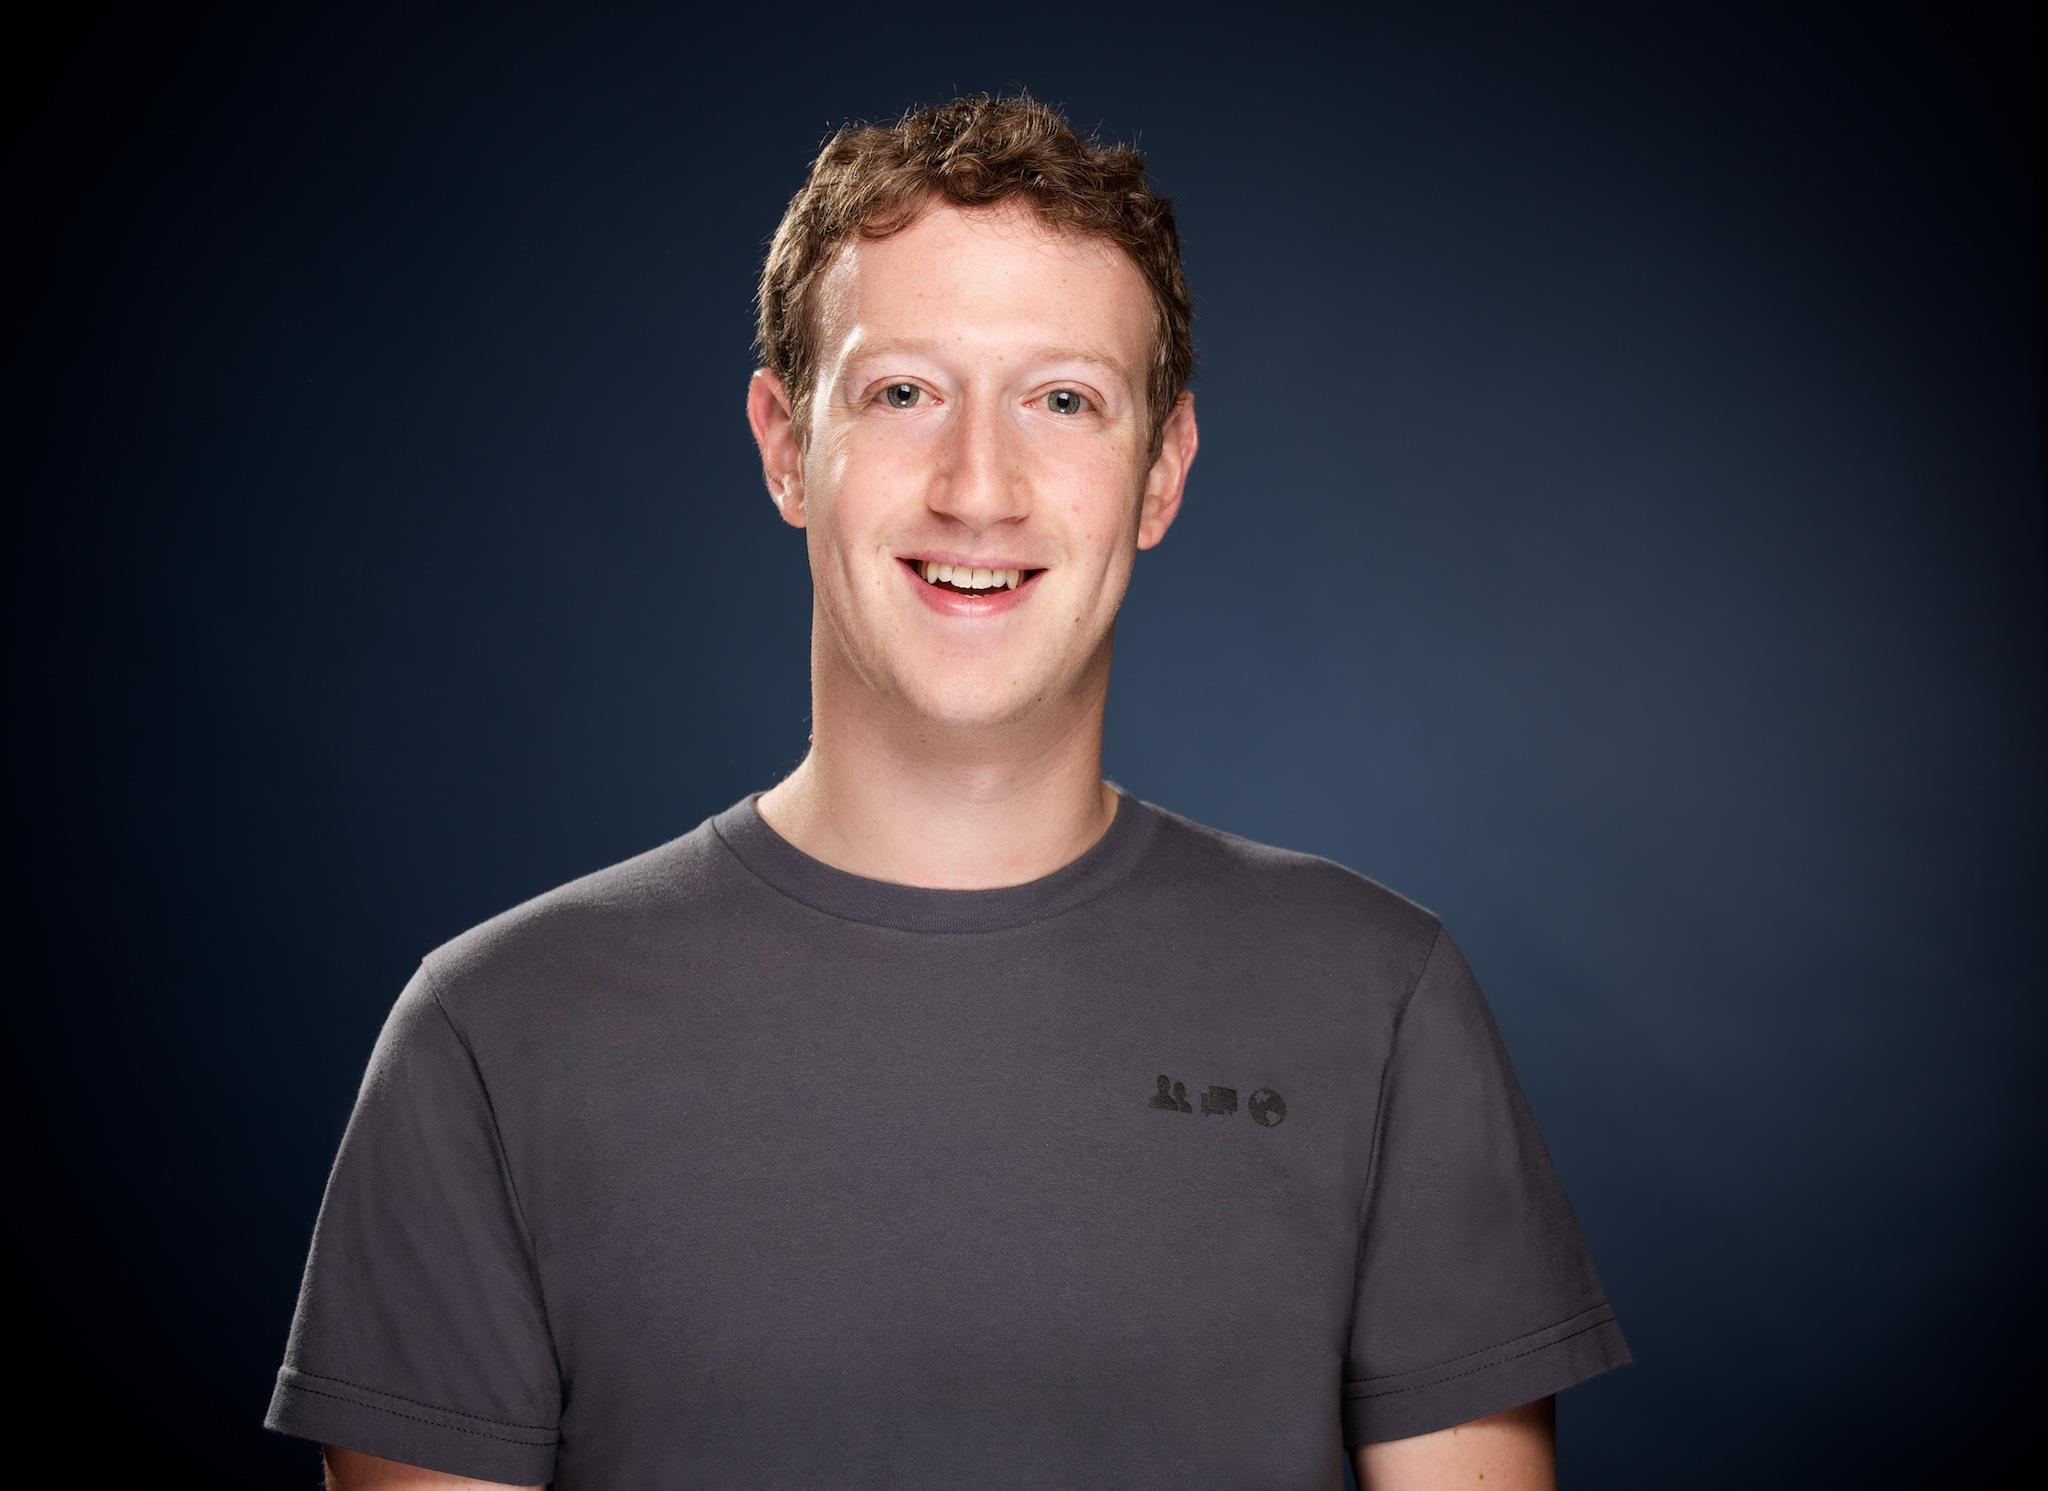 Mark Zuckerberg - CEO of Facebook